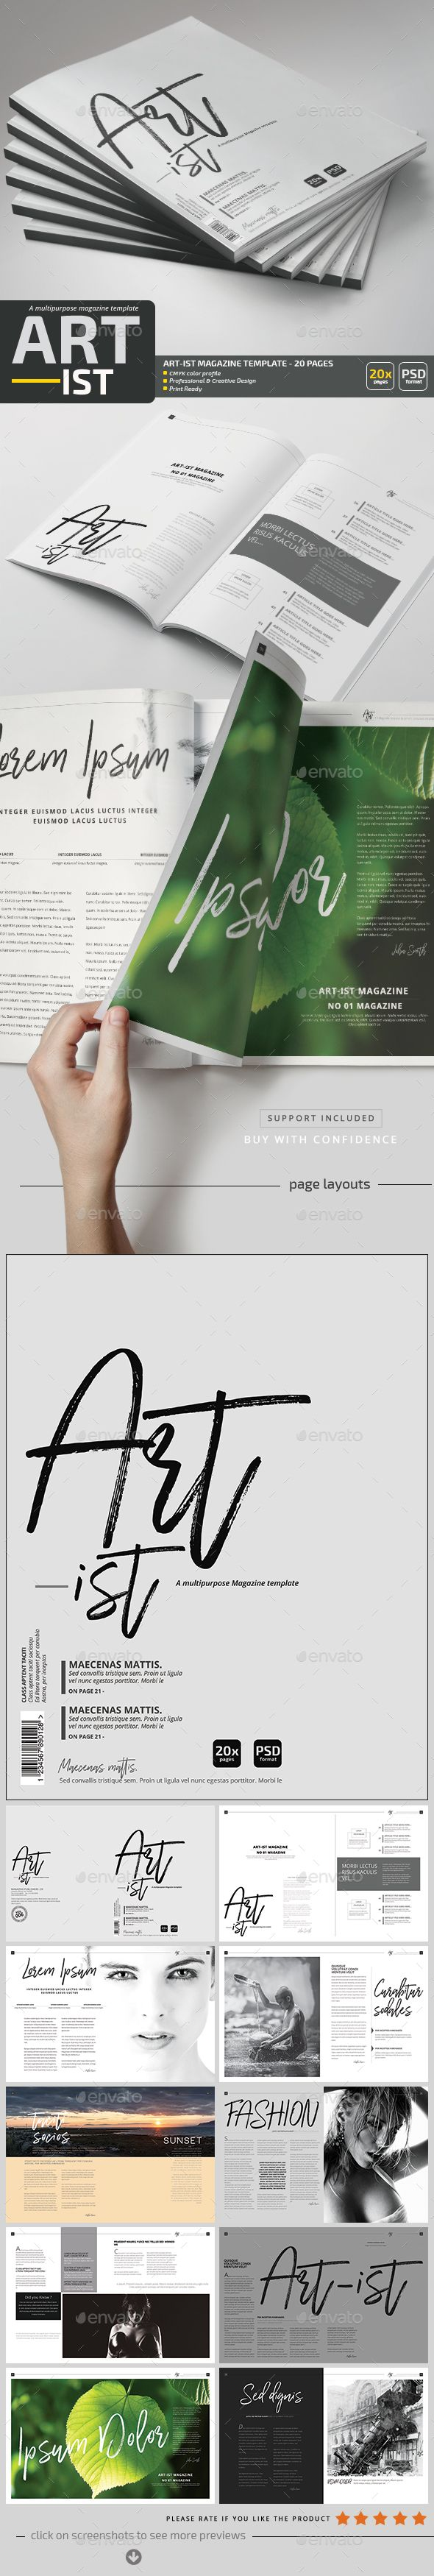 Art-ist Magazine Template V.6 by pmvch Art-Ist Photoshop Magazine Template Vol.6can be used as a magazine, portfolio or a brochure.Fully layered PSD files and very easy